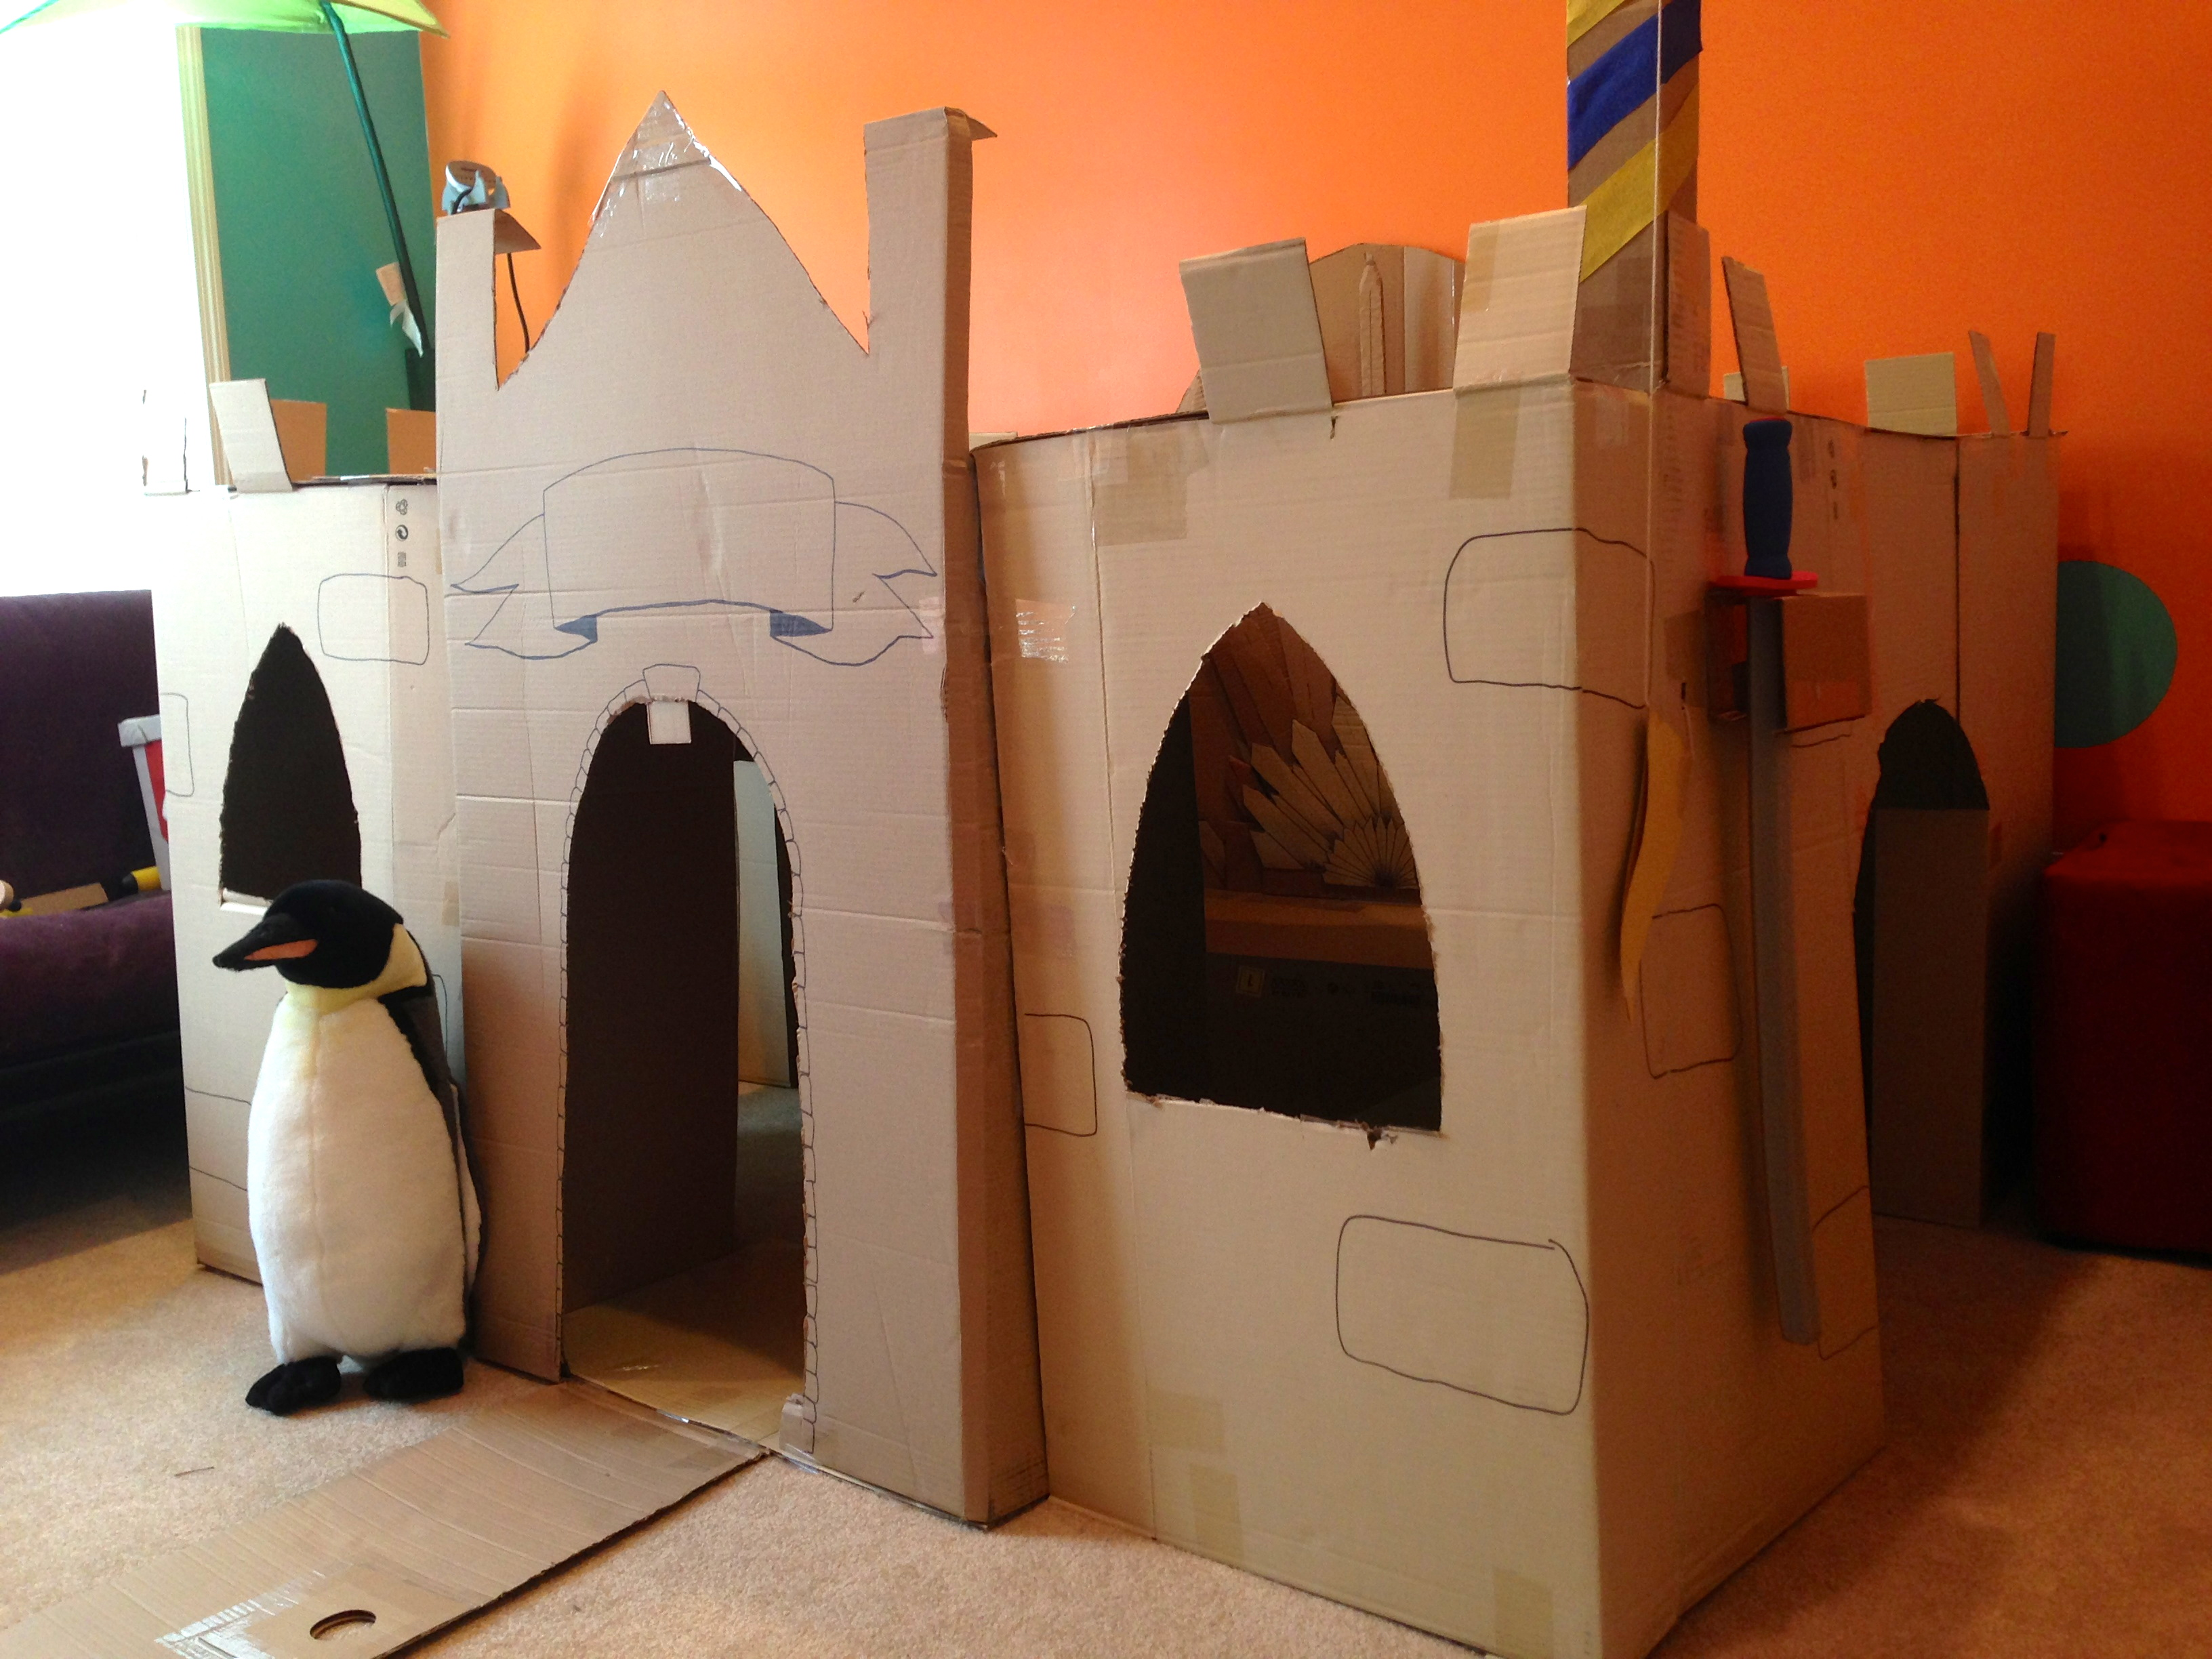 Pictures Of The Cardboard Keep Complete With Iron Cardboard Throne